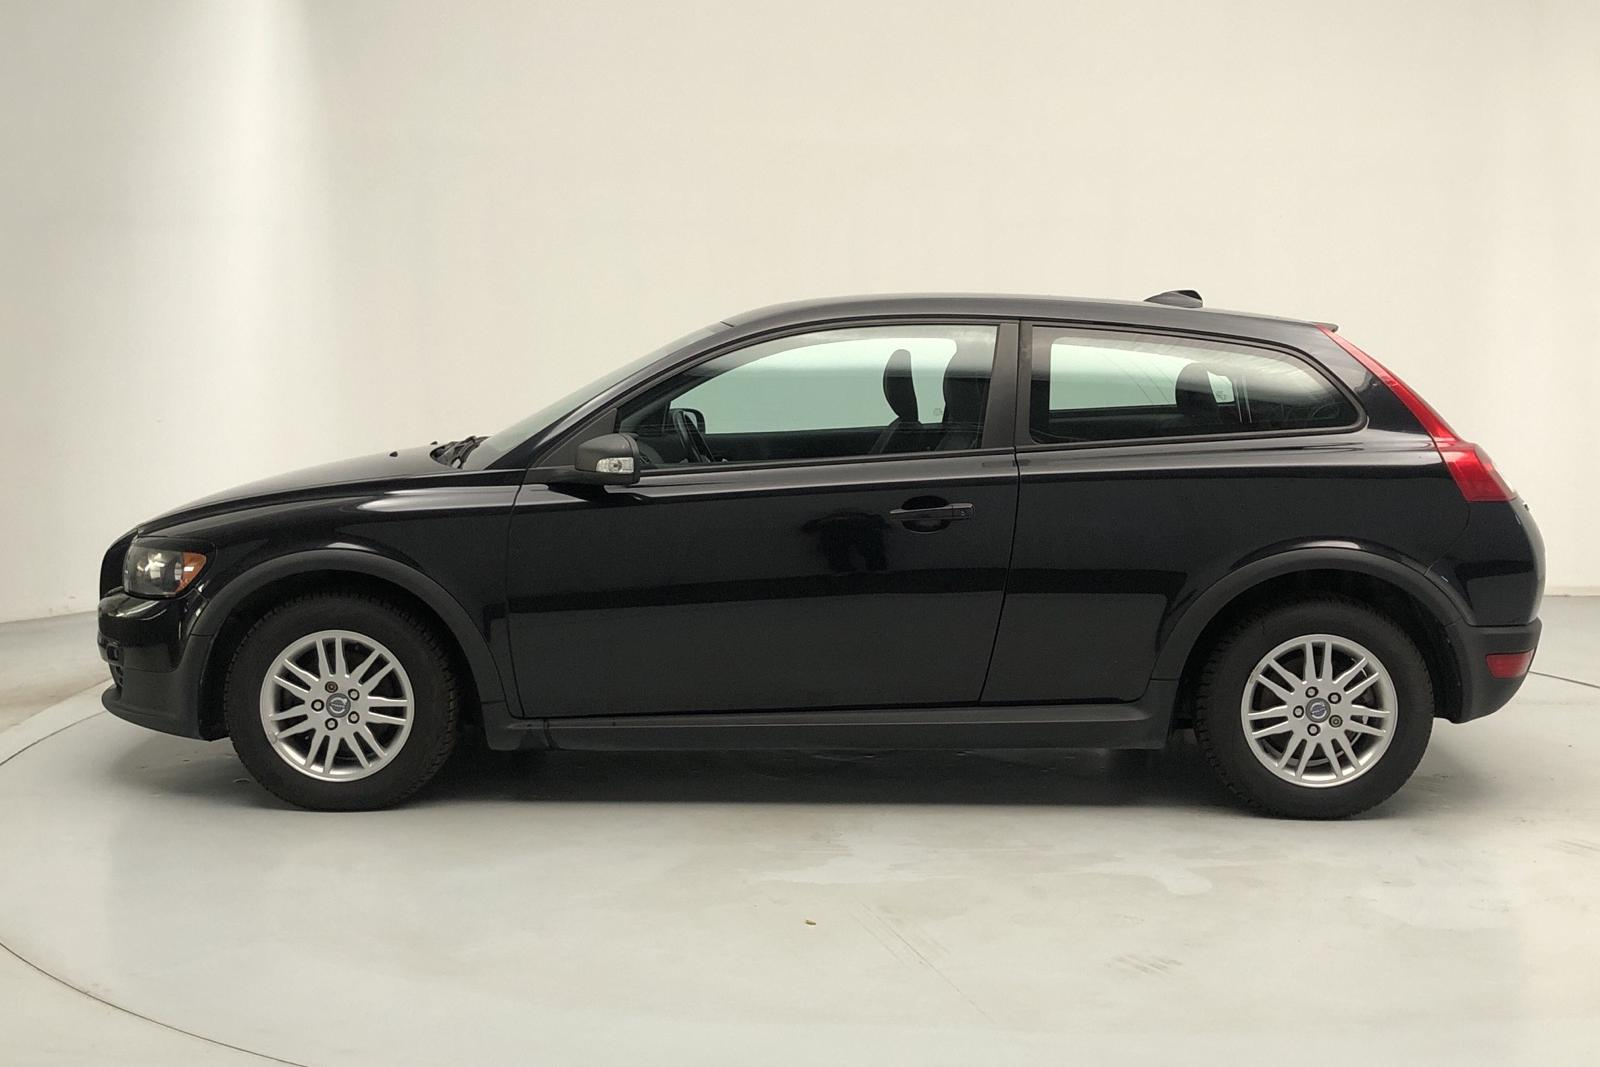 Volvo C30 1.8 Flexifuel (125hk) - 96 000 km - Manual - black - 2008